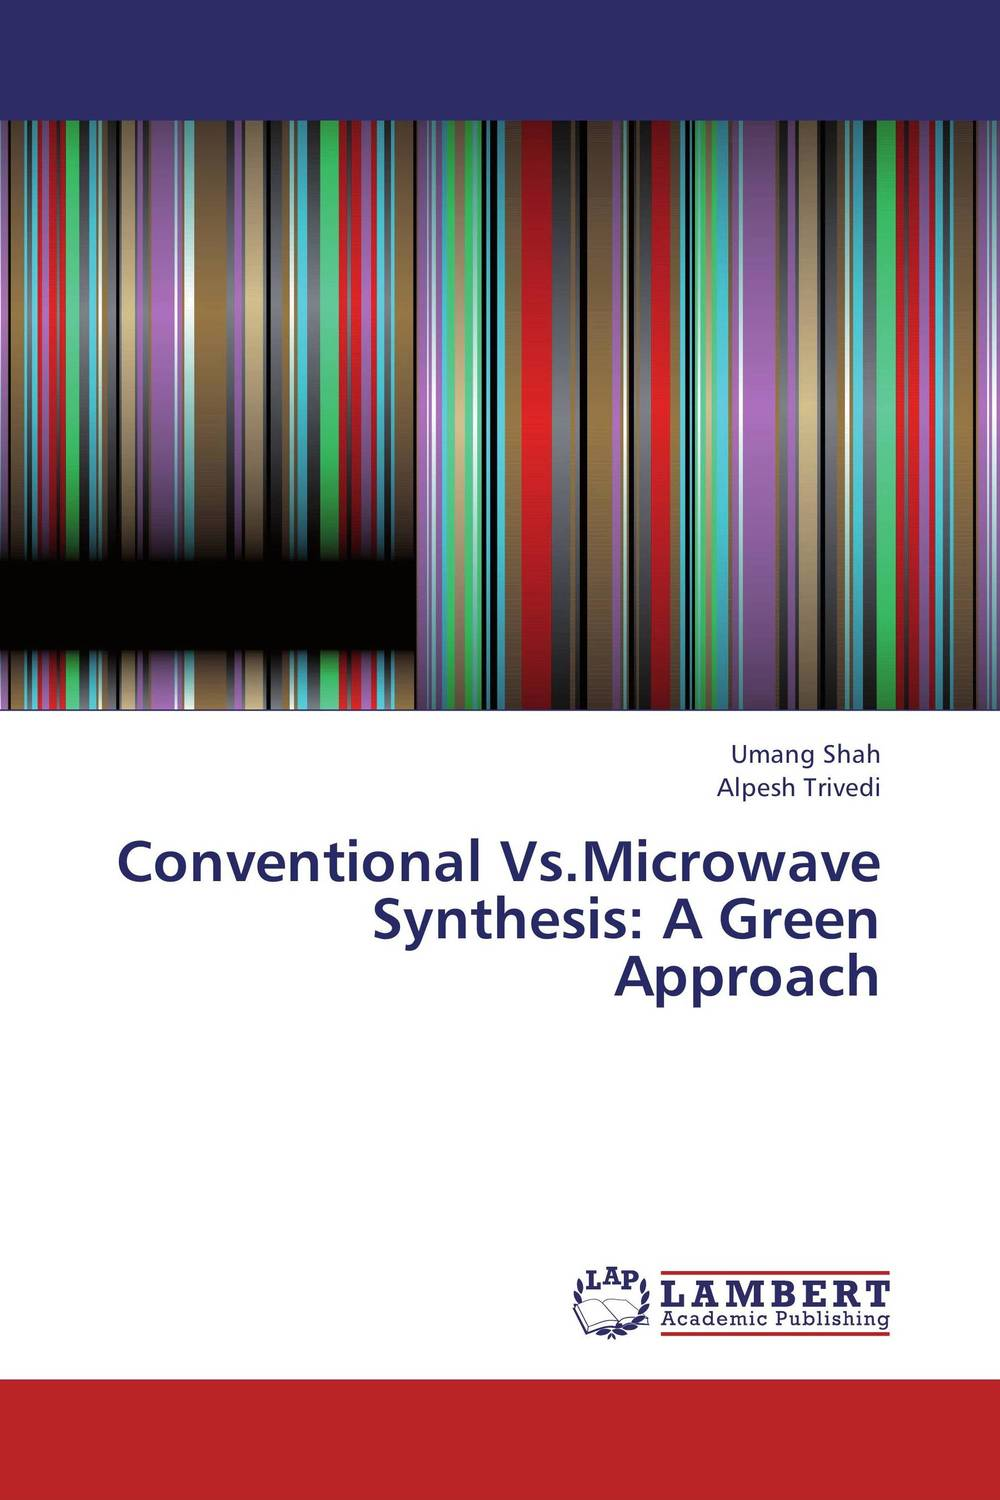 Conventional Vs.Microwave Synthesis: A Green Approach theilheimer synthetic methods of organic chemistry yearbook 1974